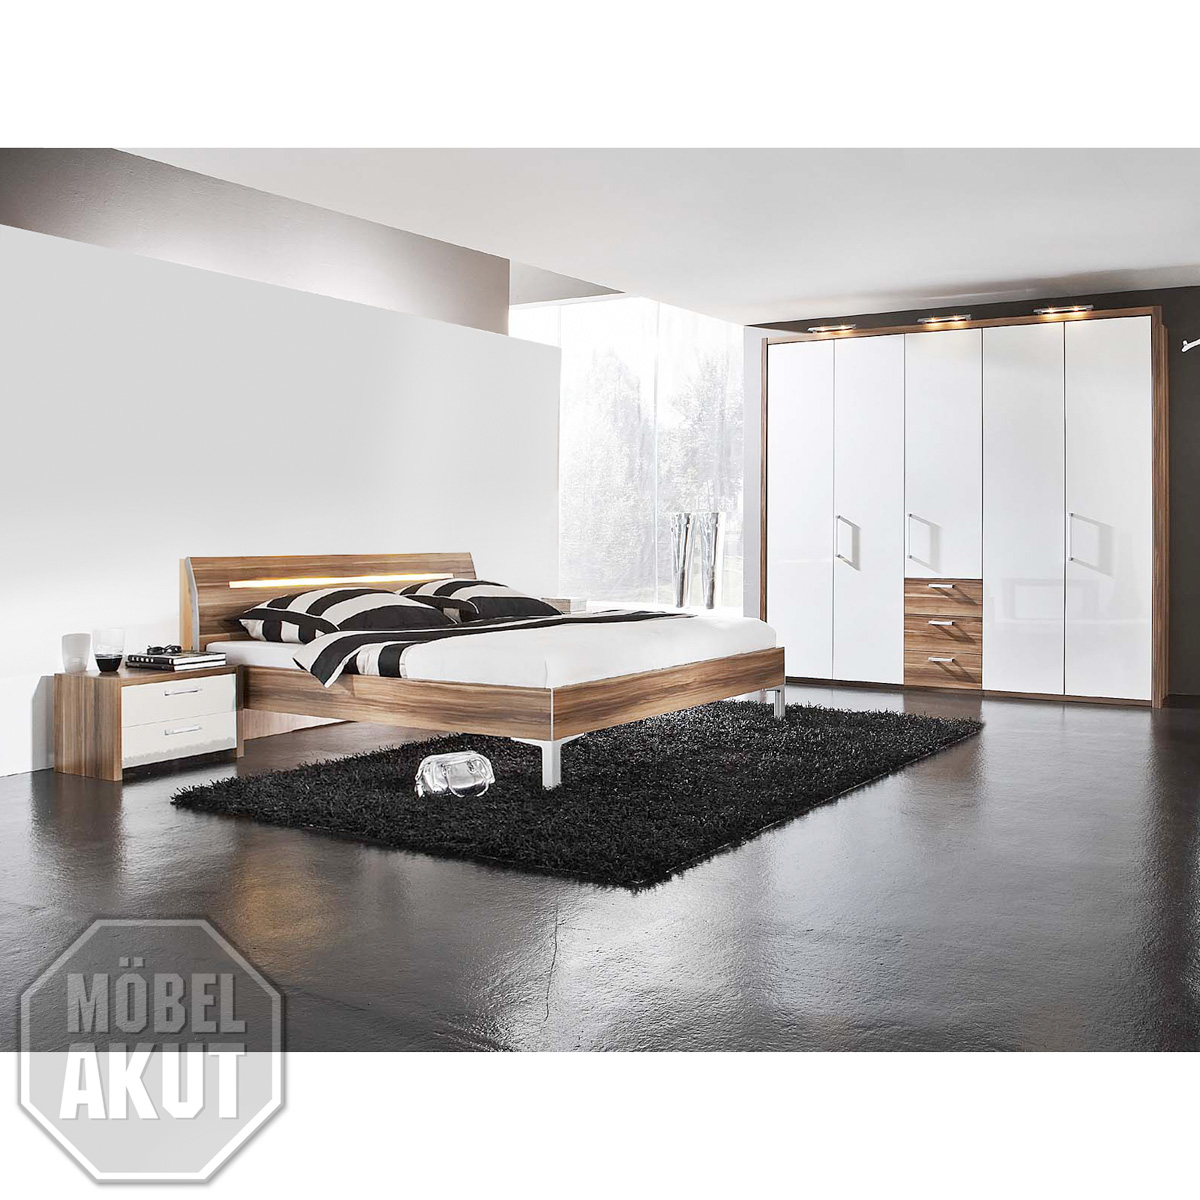 4 tlg schlafzimmer set solo bett schrank kommode wei. Black Bedroom Furniture Sets. Home Design Ideas